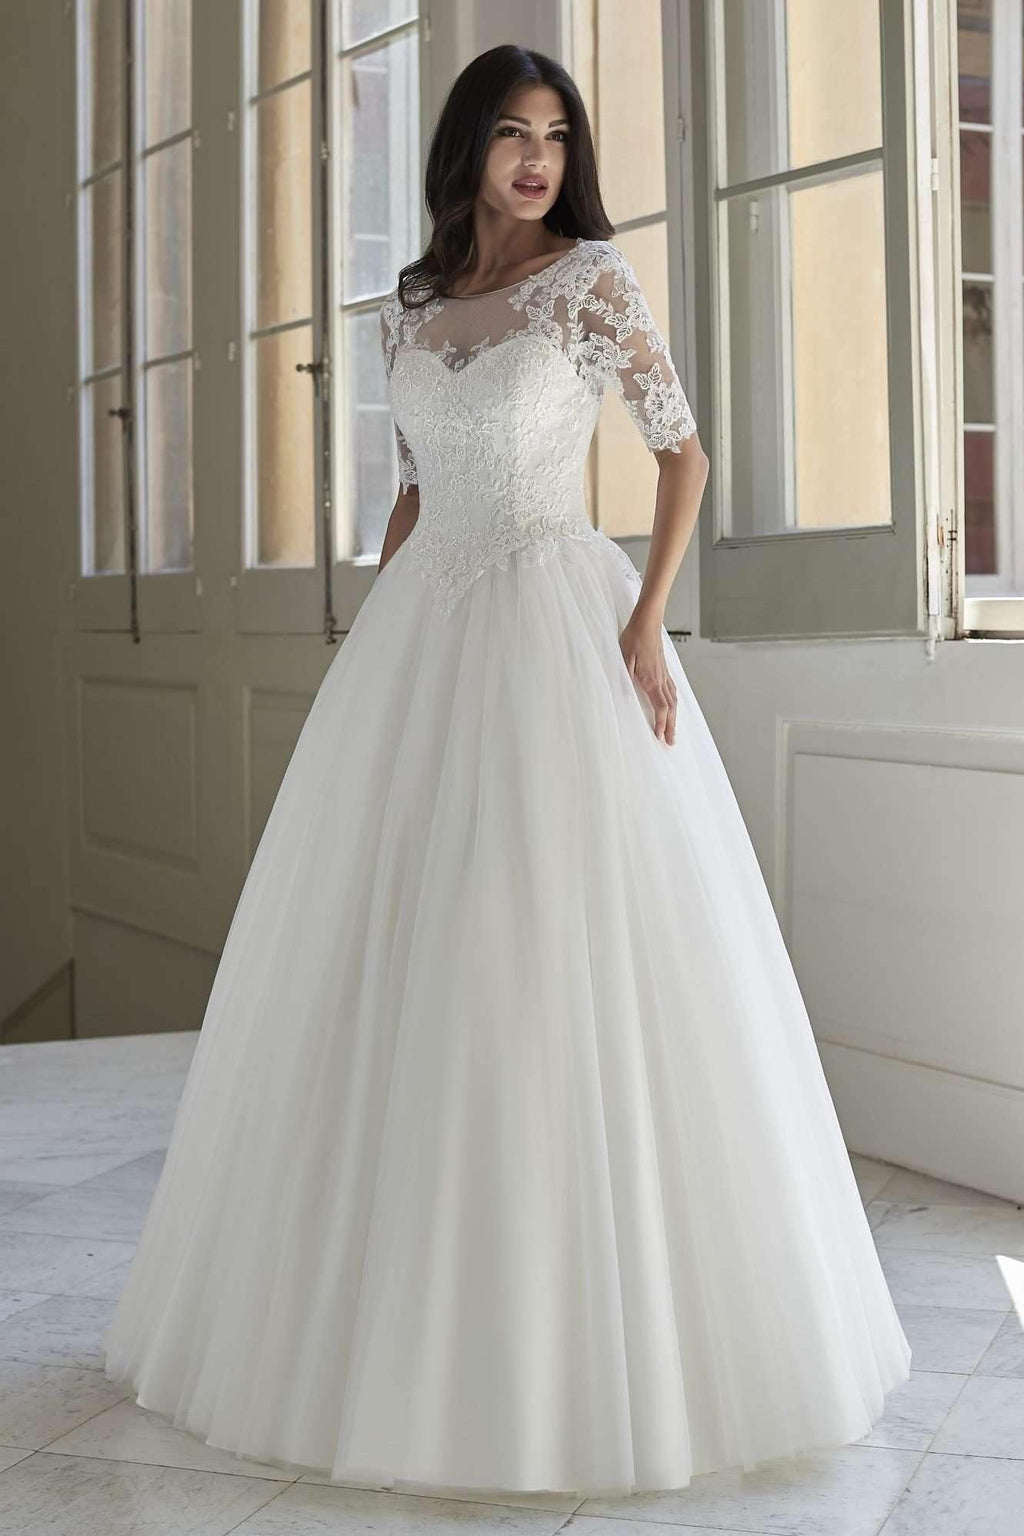 VENUS BRIDAL - Dolores - Adore Bridal and Occasion Wear